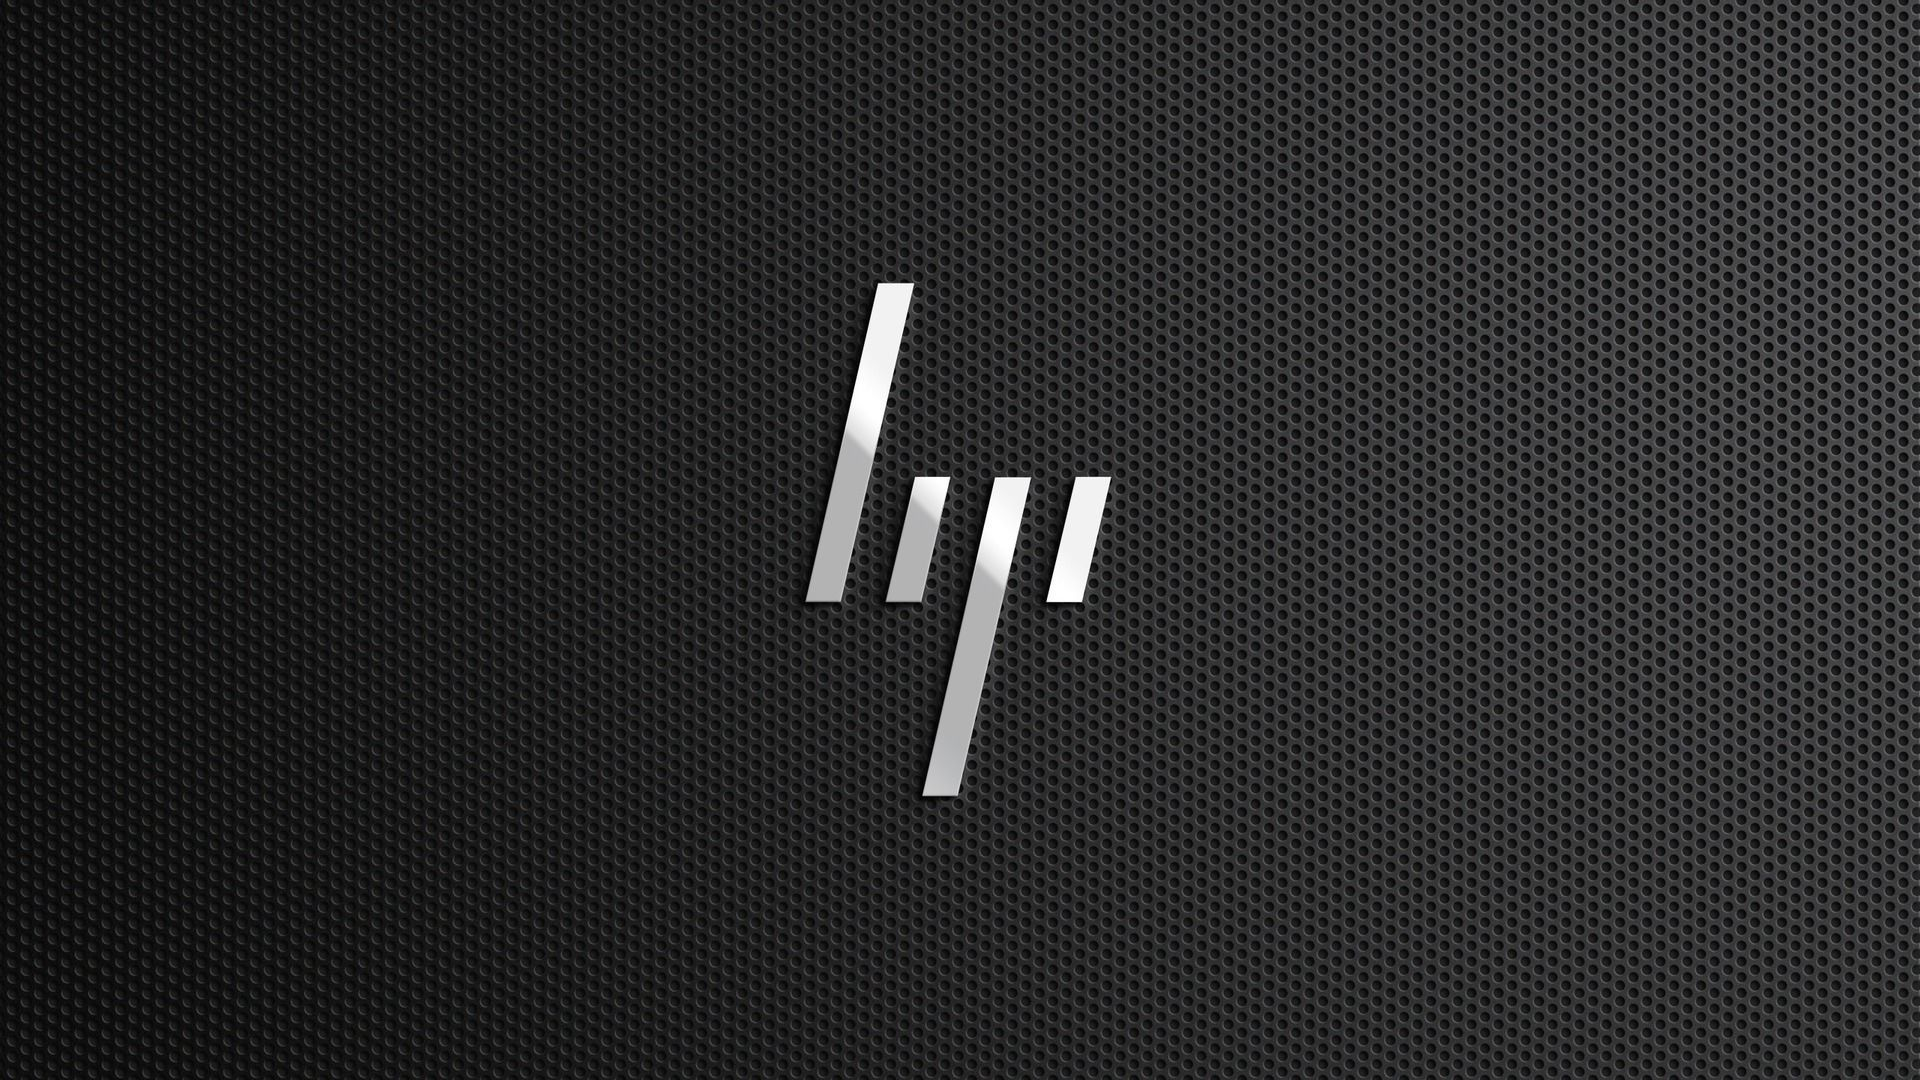 Desktop Backgrounds And Wallpapers Wallpapers for Hp Laptops 1920x1080